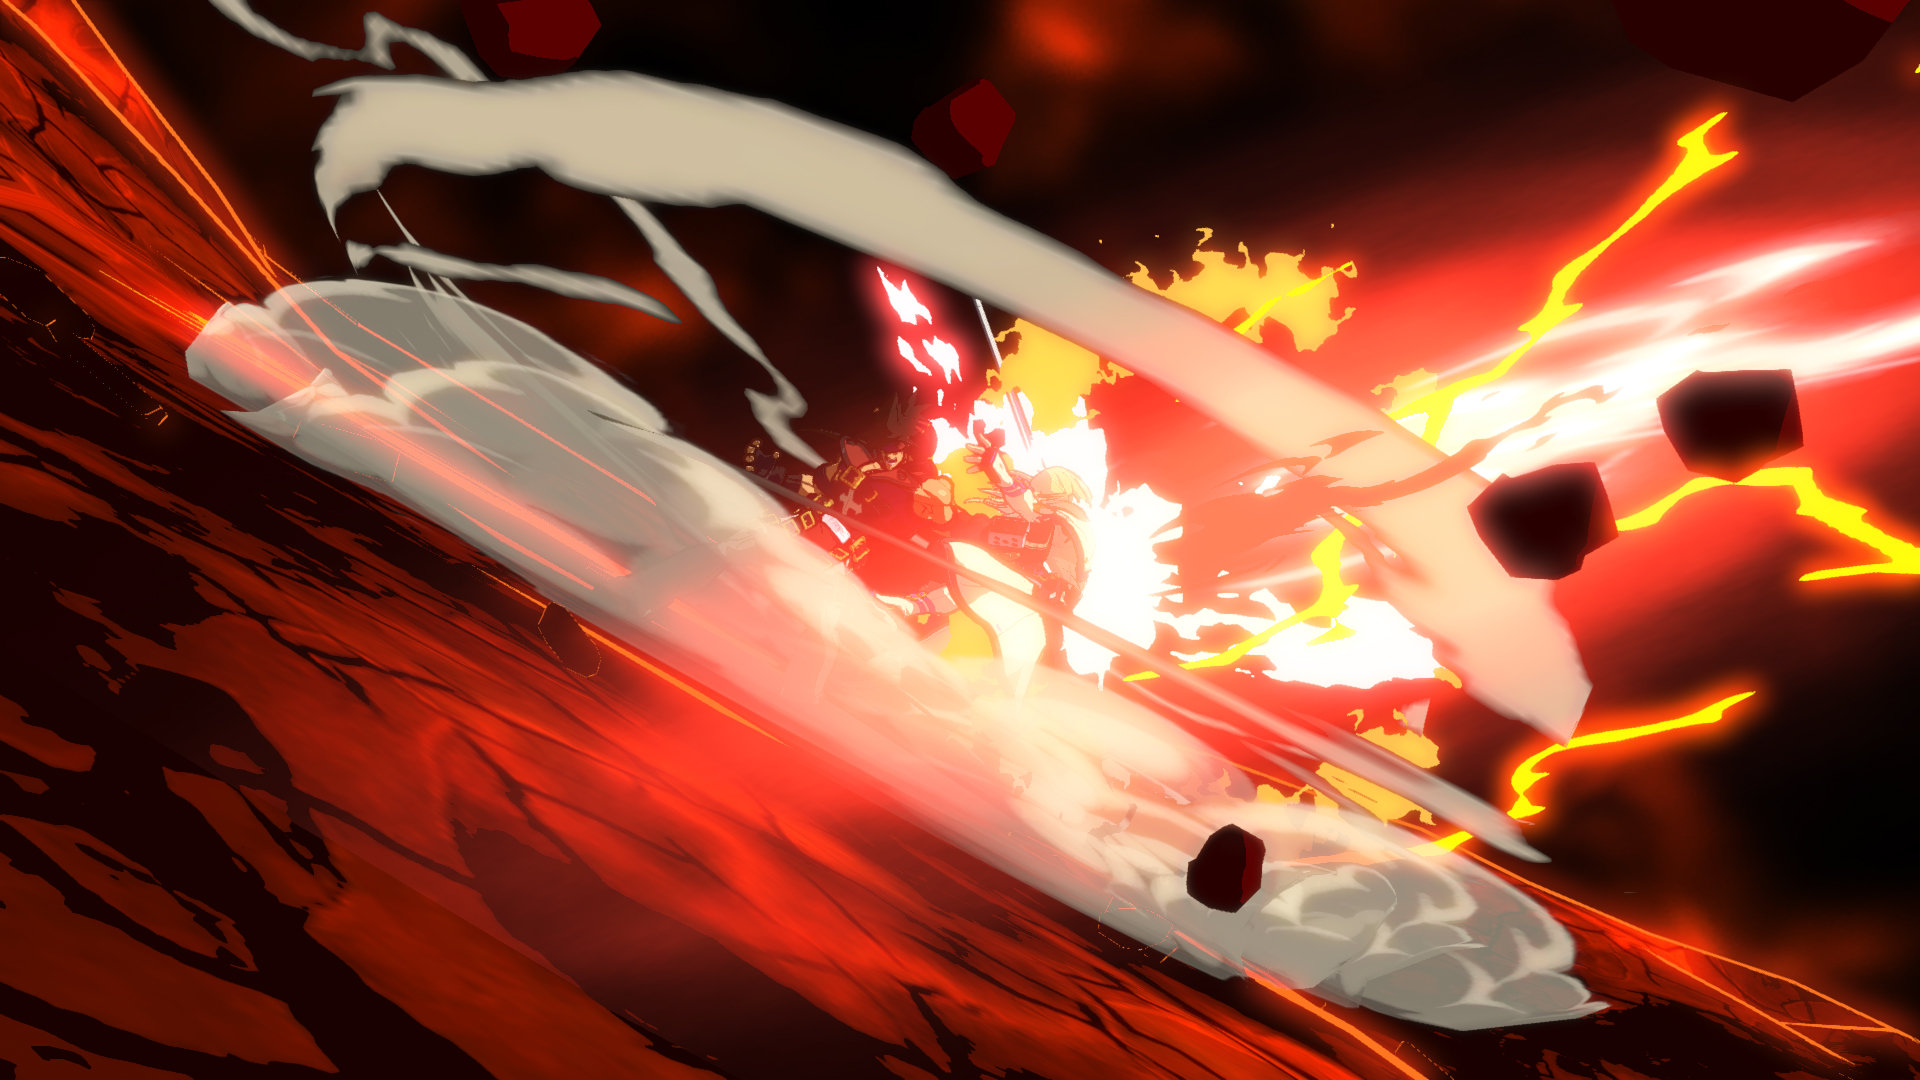 guilty-gear-xrd-screenshot-02-ps4-us-06j